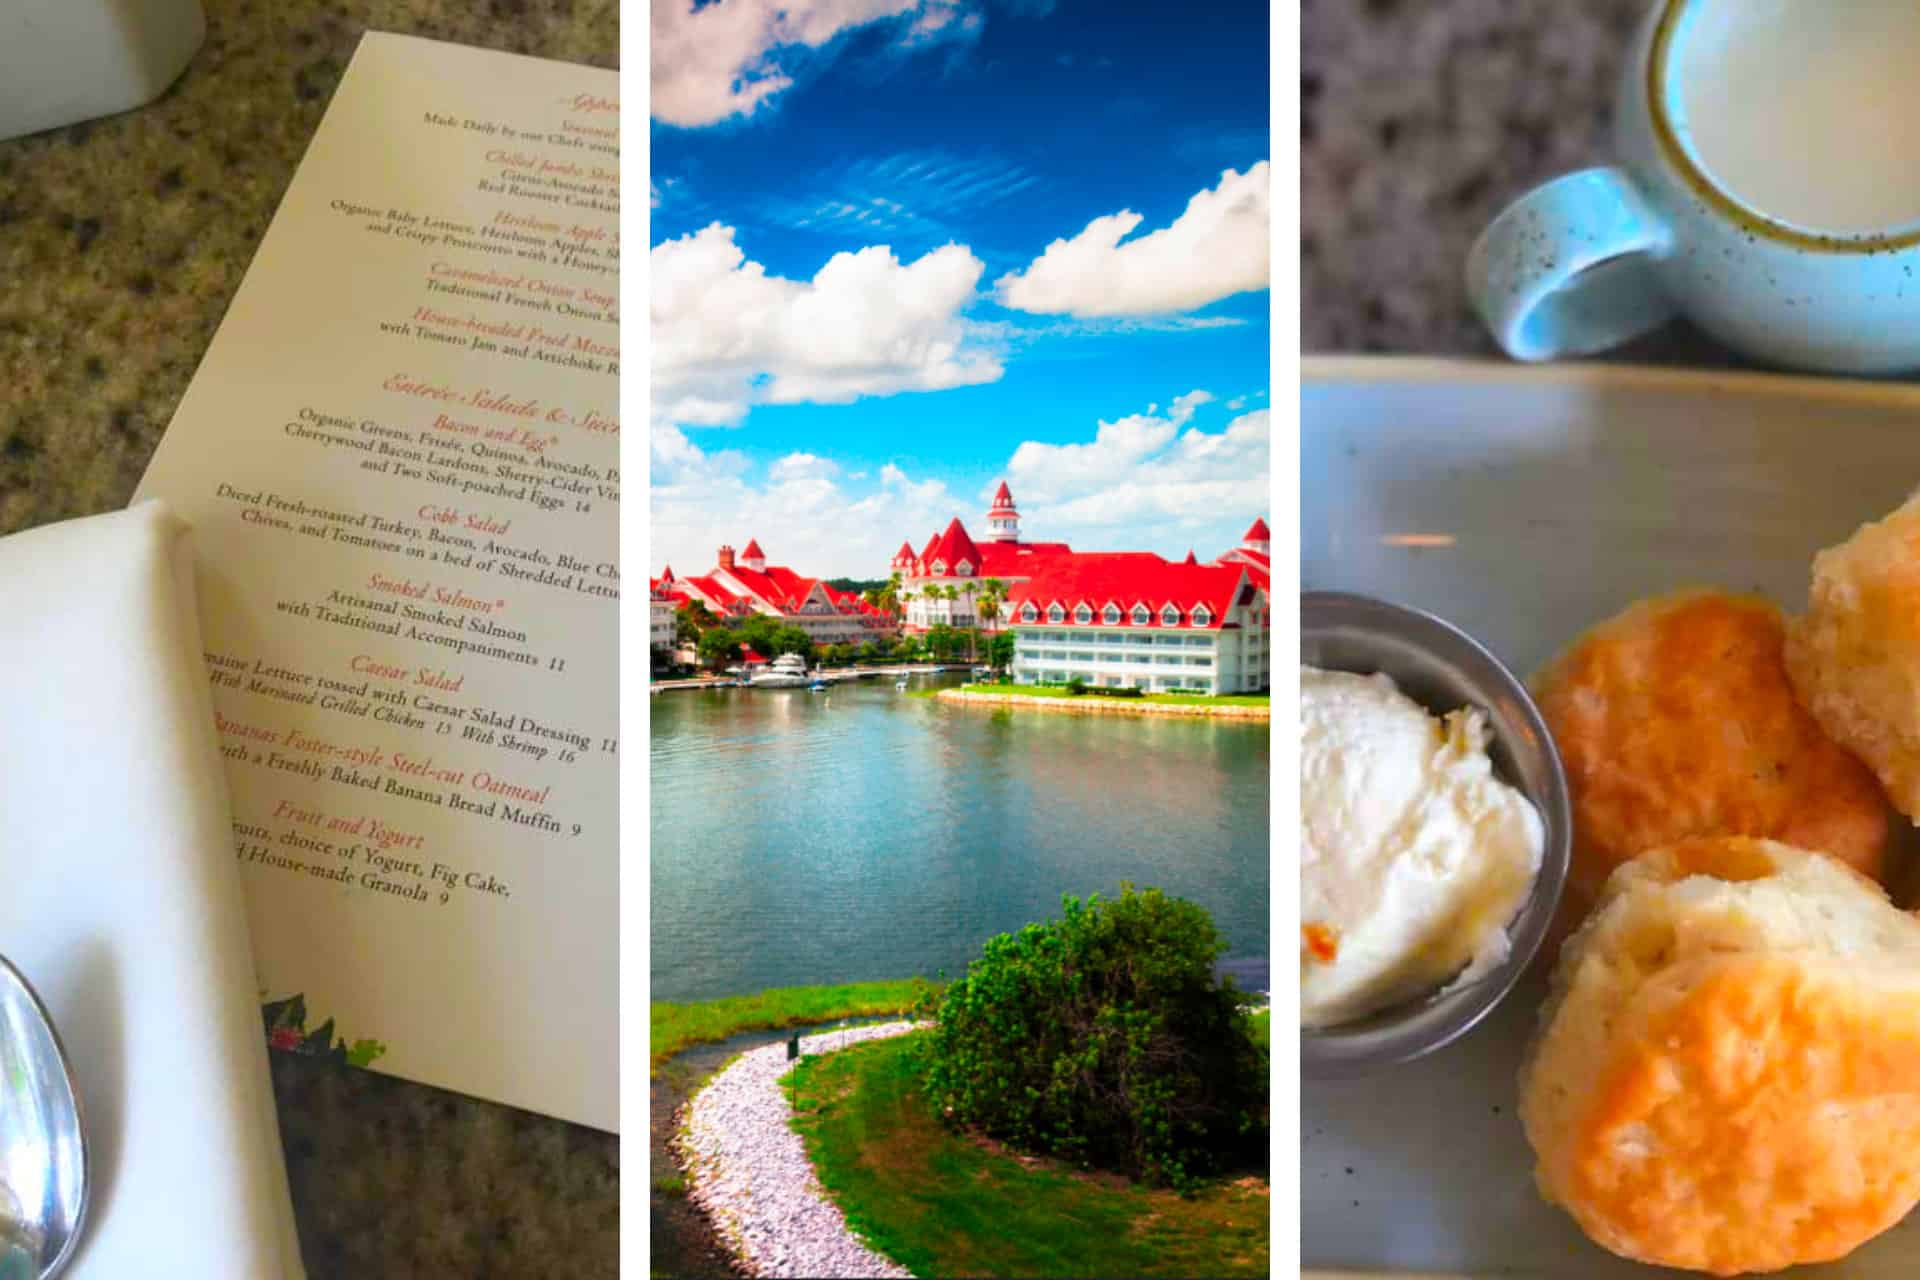 A breakfast spread on a table and an image of the Grand Floridian Resort with a deep blue sky, and a menu from the Grand Floridian Cafe